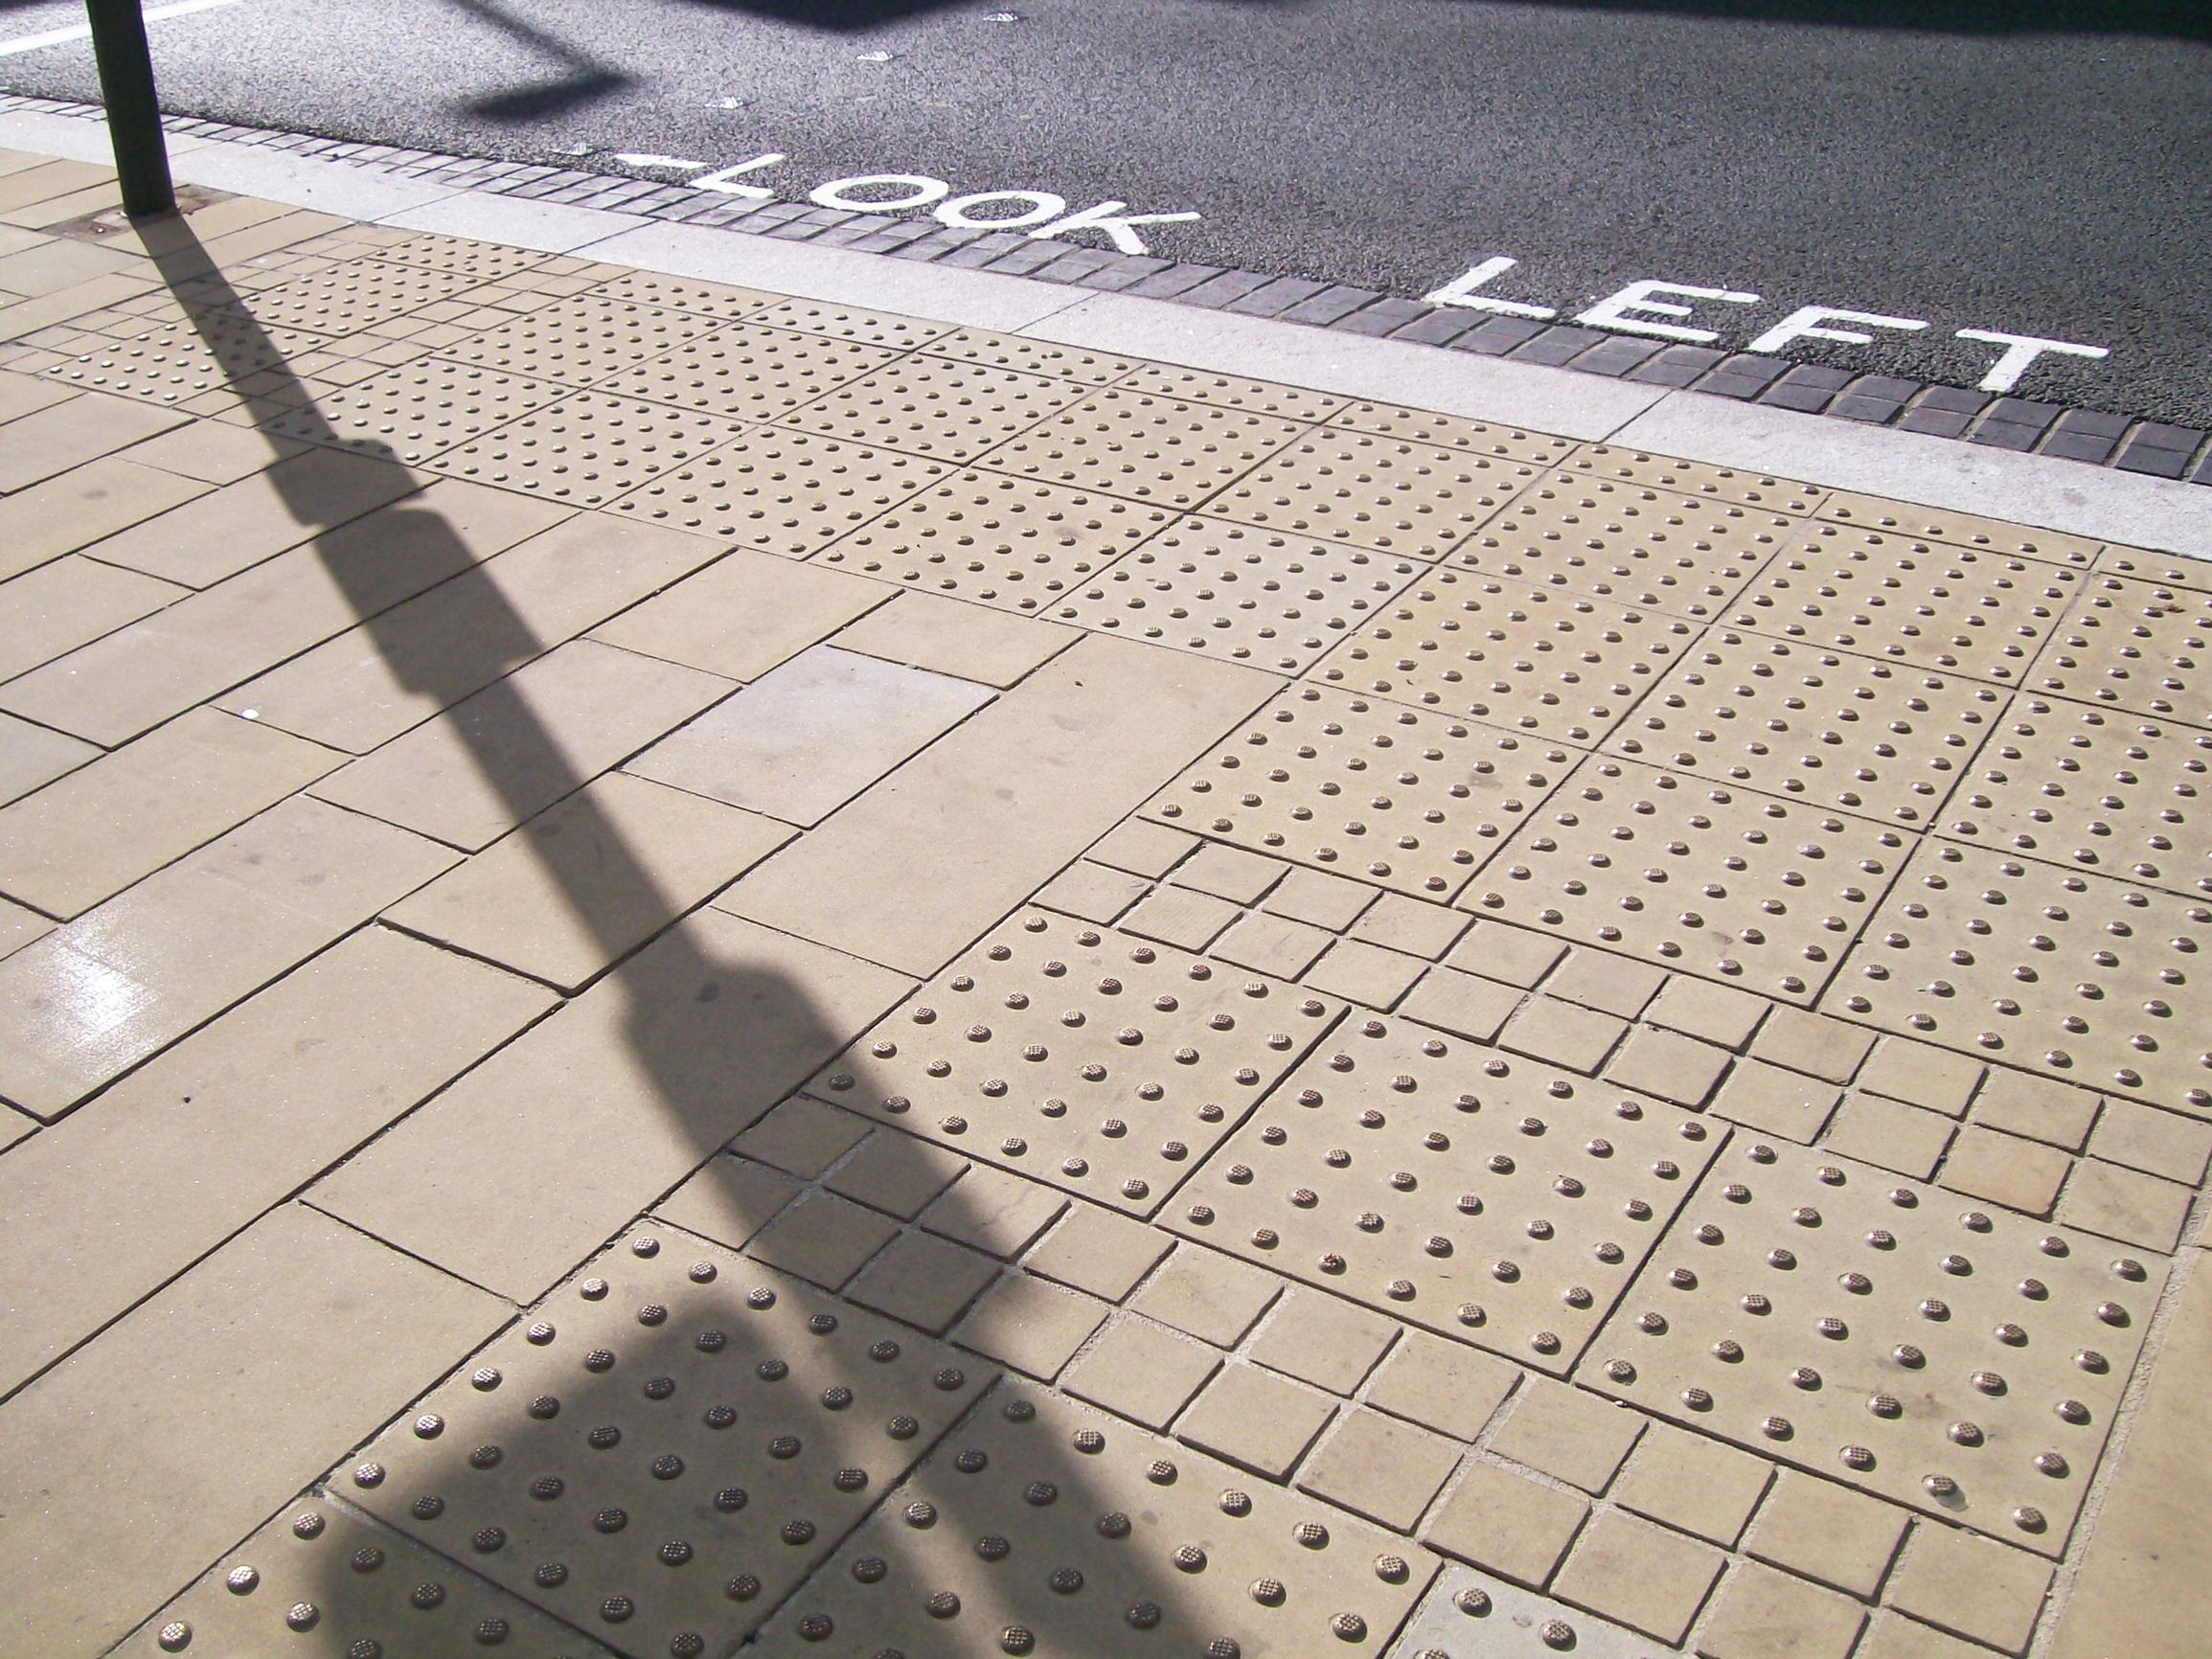 DfT reviews guidance on tactile paving